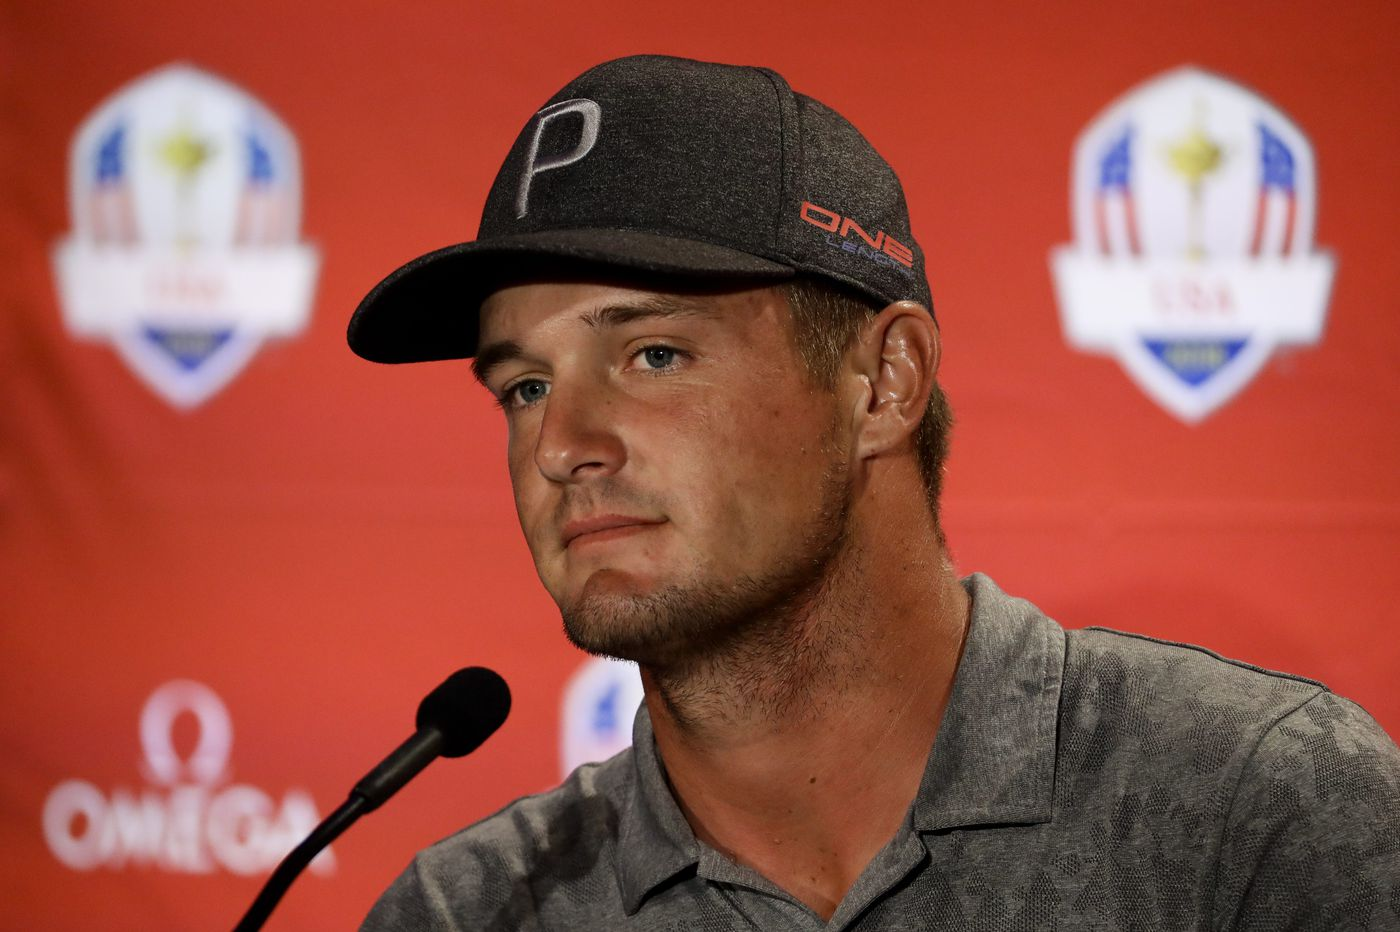 Bryson DeChambeau, ahead of BMW Championship at Aronimink, has discovered the winning formula